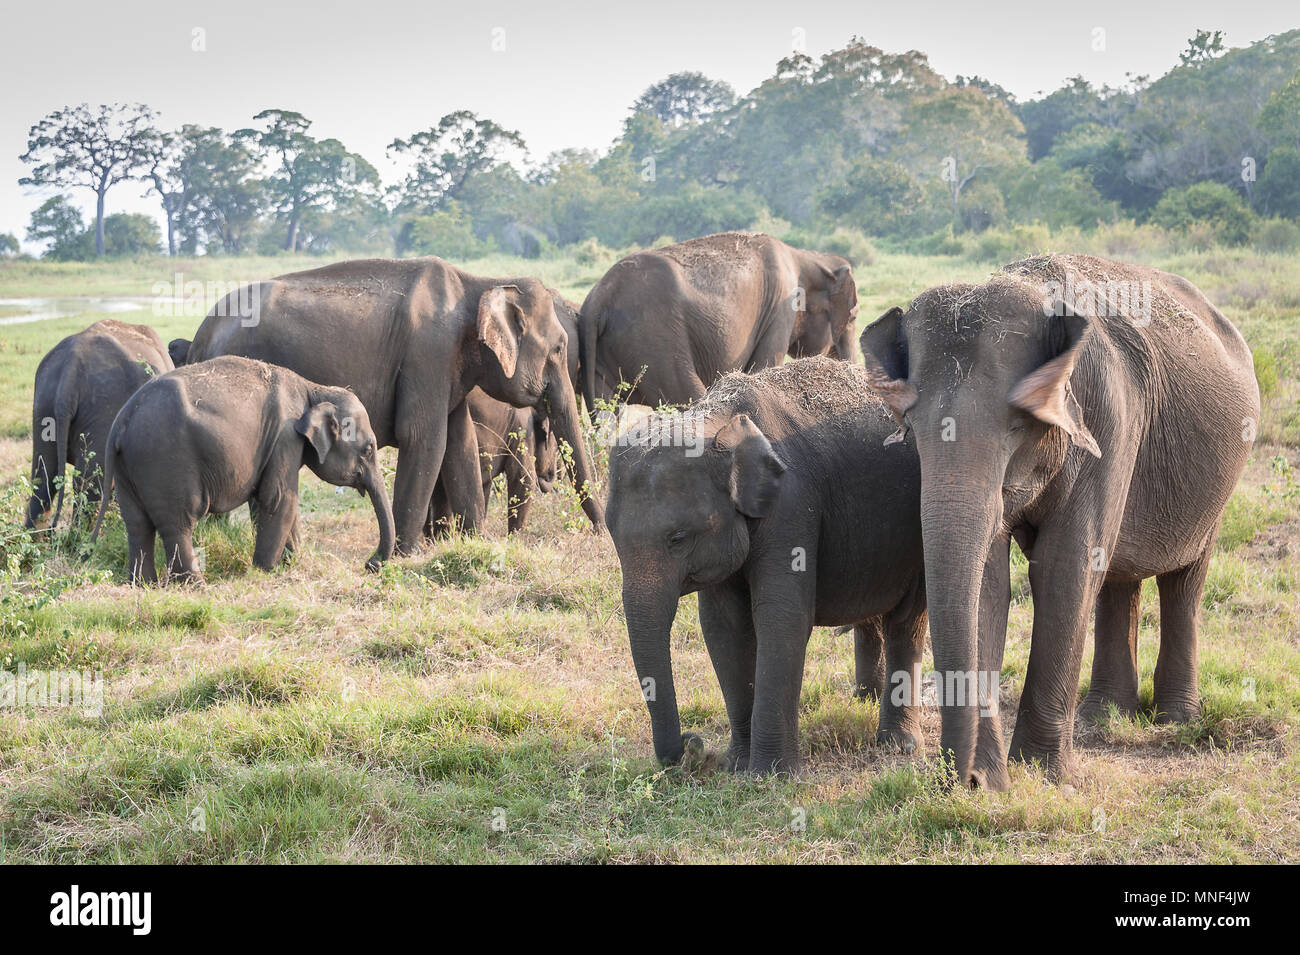 Herd of Indian elephants (Elephas maximus) graze on grassland in Minerriya National Park, Sri Lanka. Peaceful sunset scene in a green landscape - Stock Image